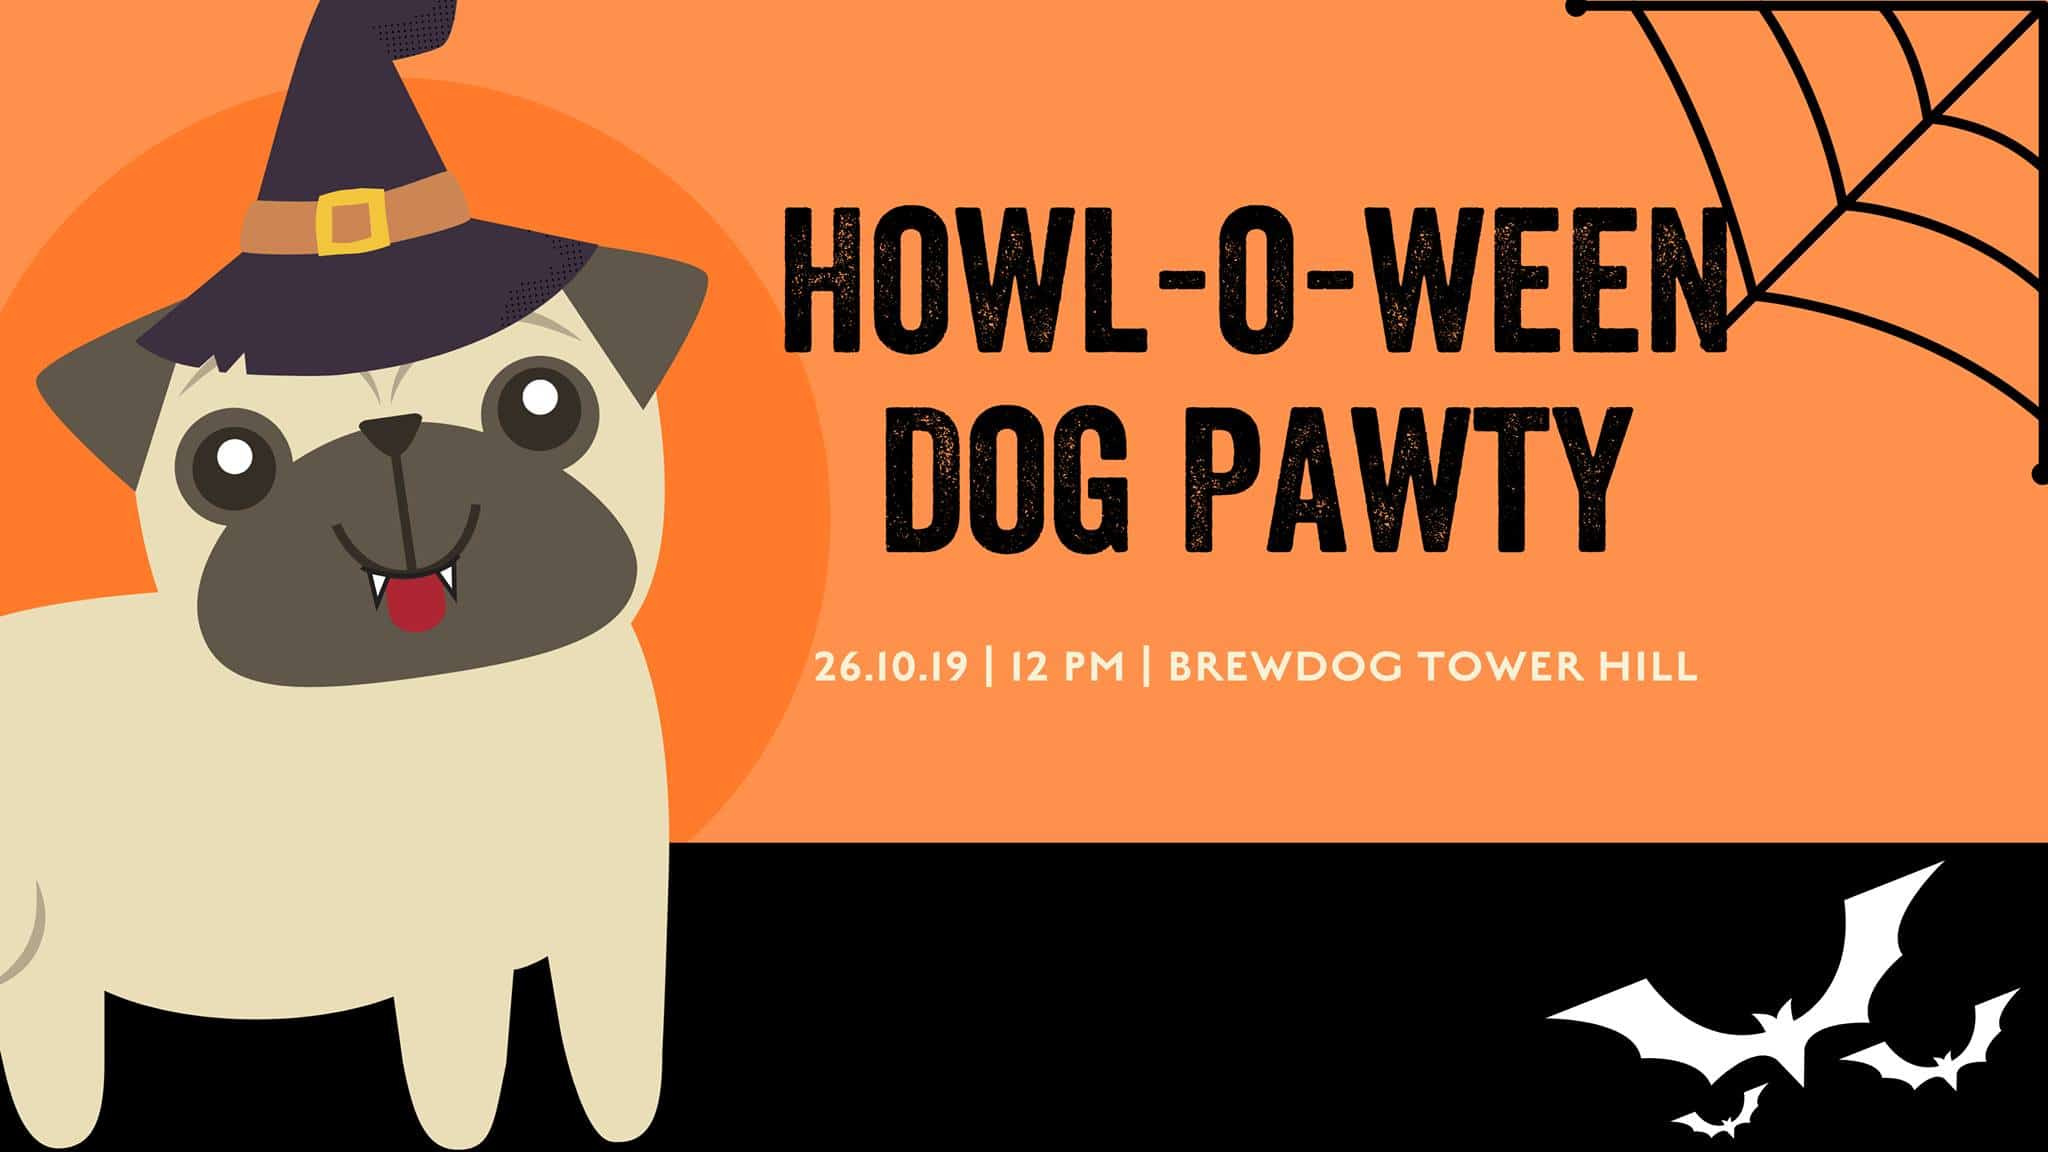 Brewdog Tower Hill Howl-O-Ween Dog Pawty